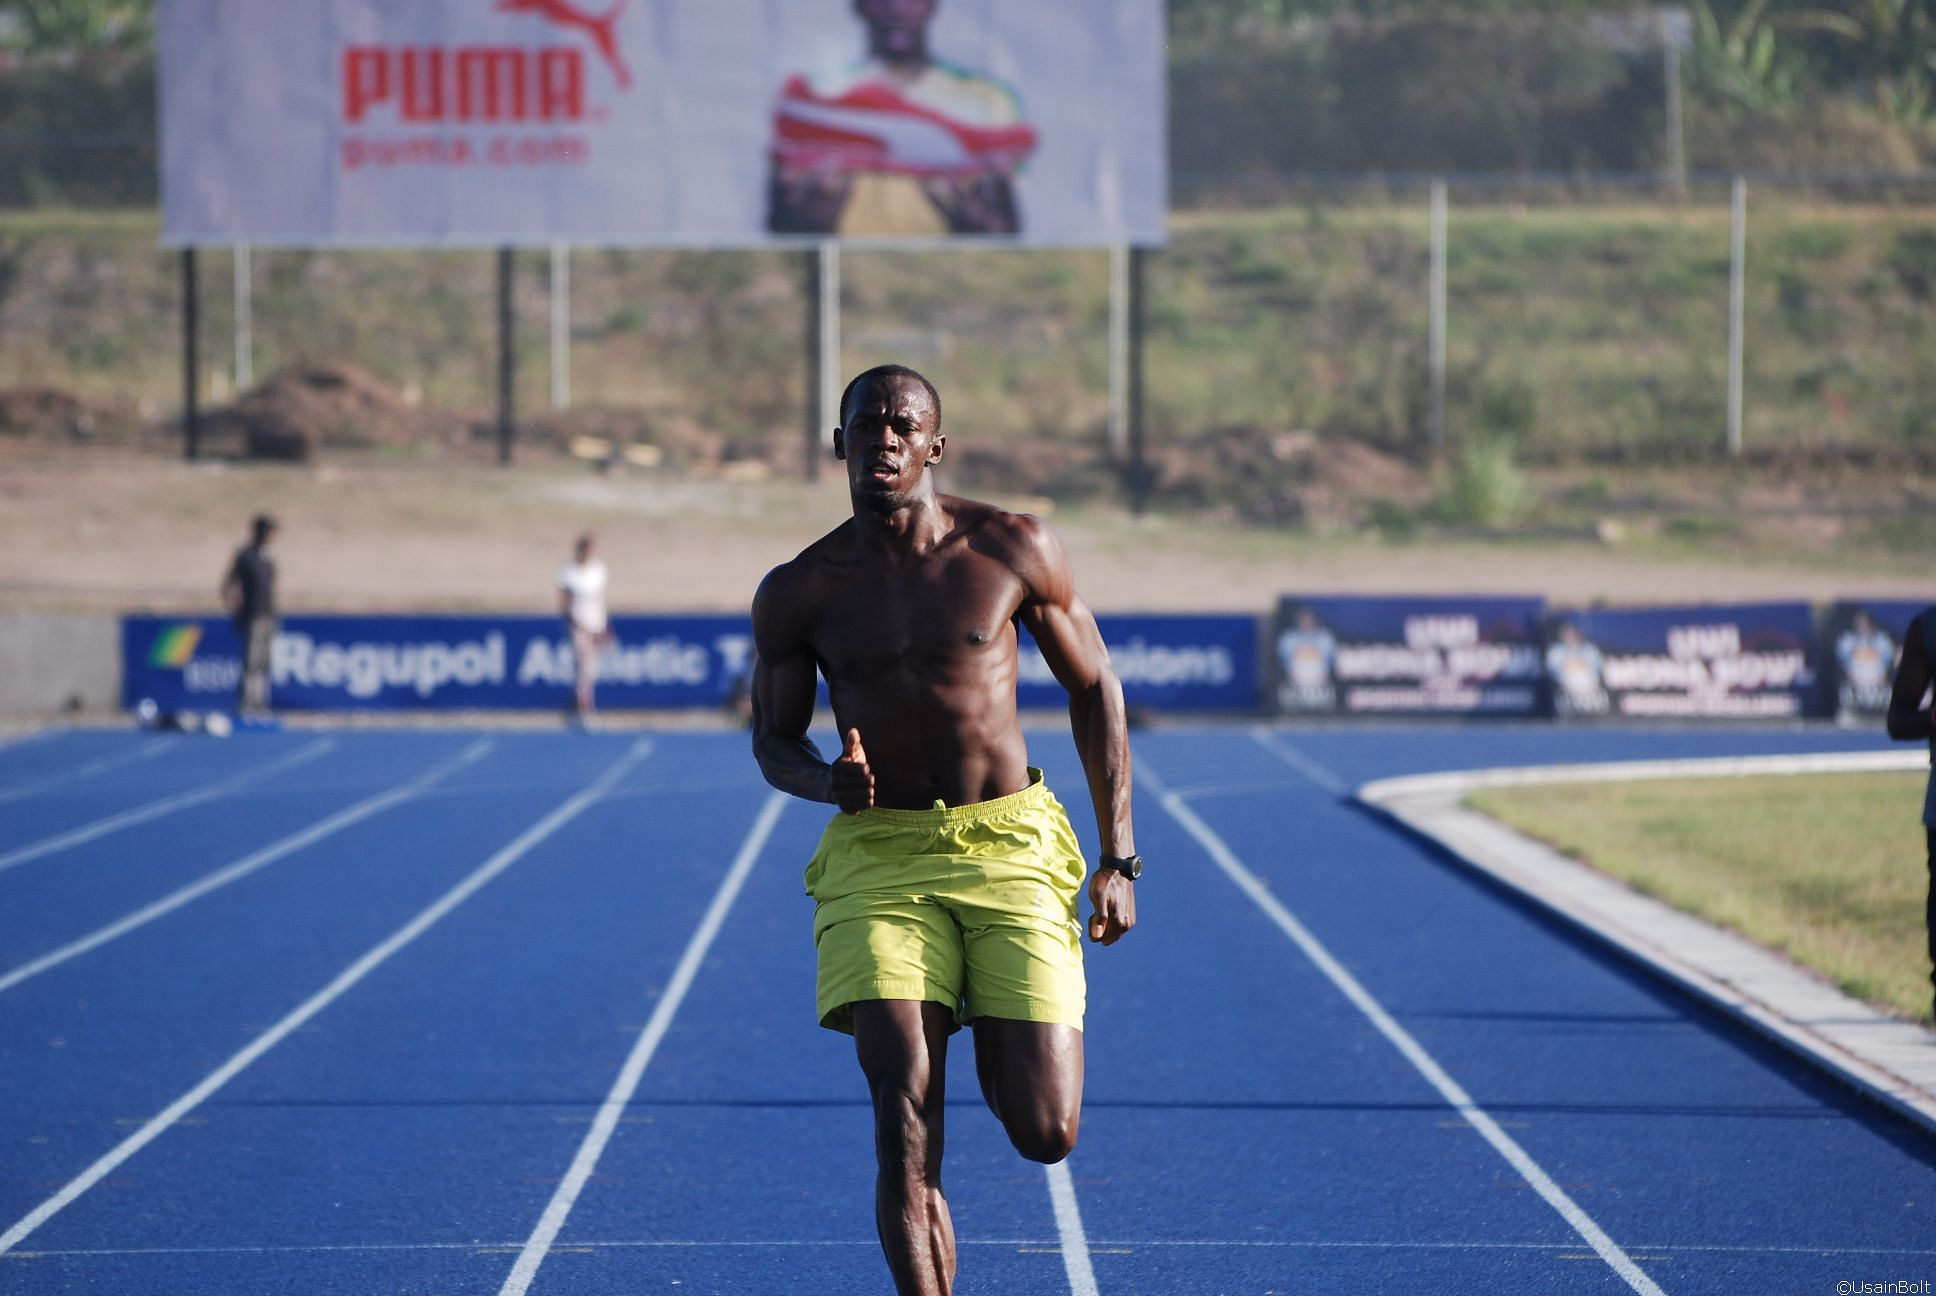 CAN YOU HANDLE USAIN BOLT'S SPEED WORKOUT CAN YOU HANDLE USAIN BOLT'S SPEED WORKOUT new pictures